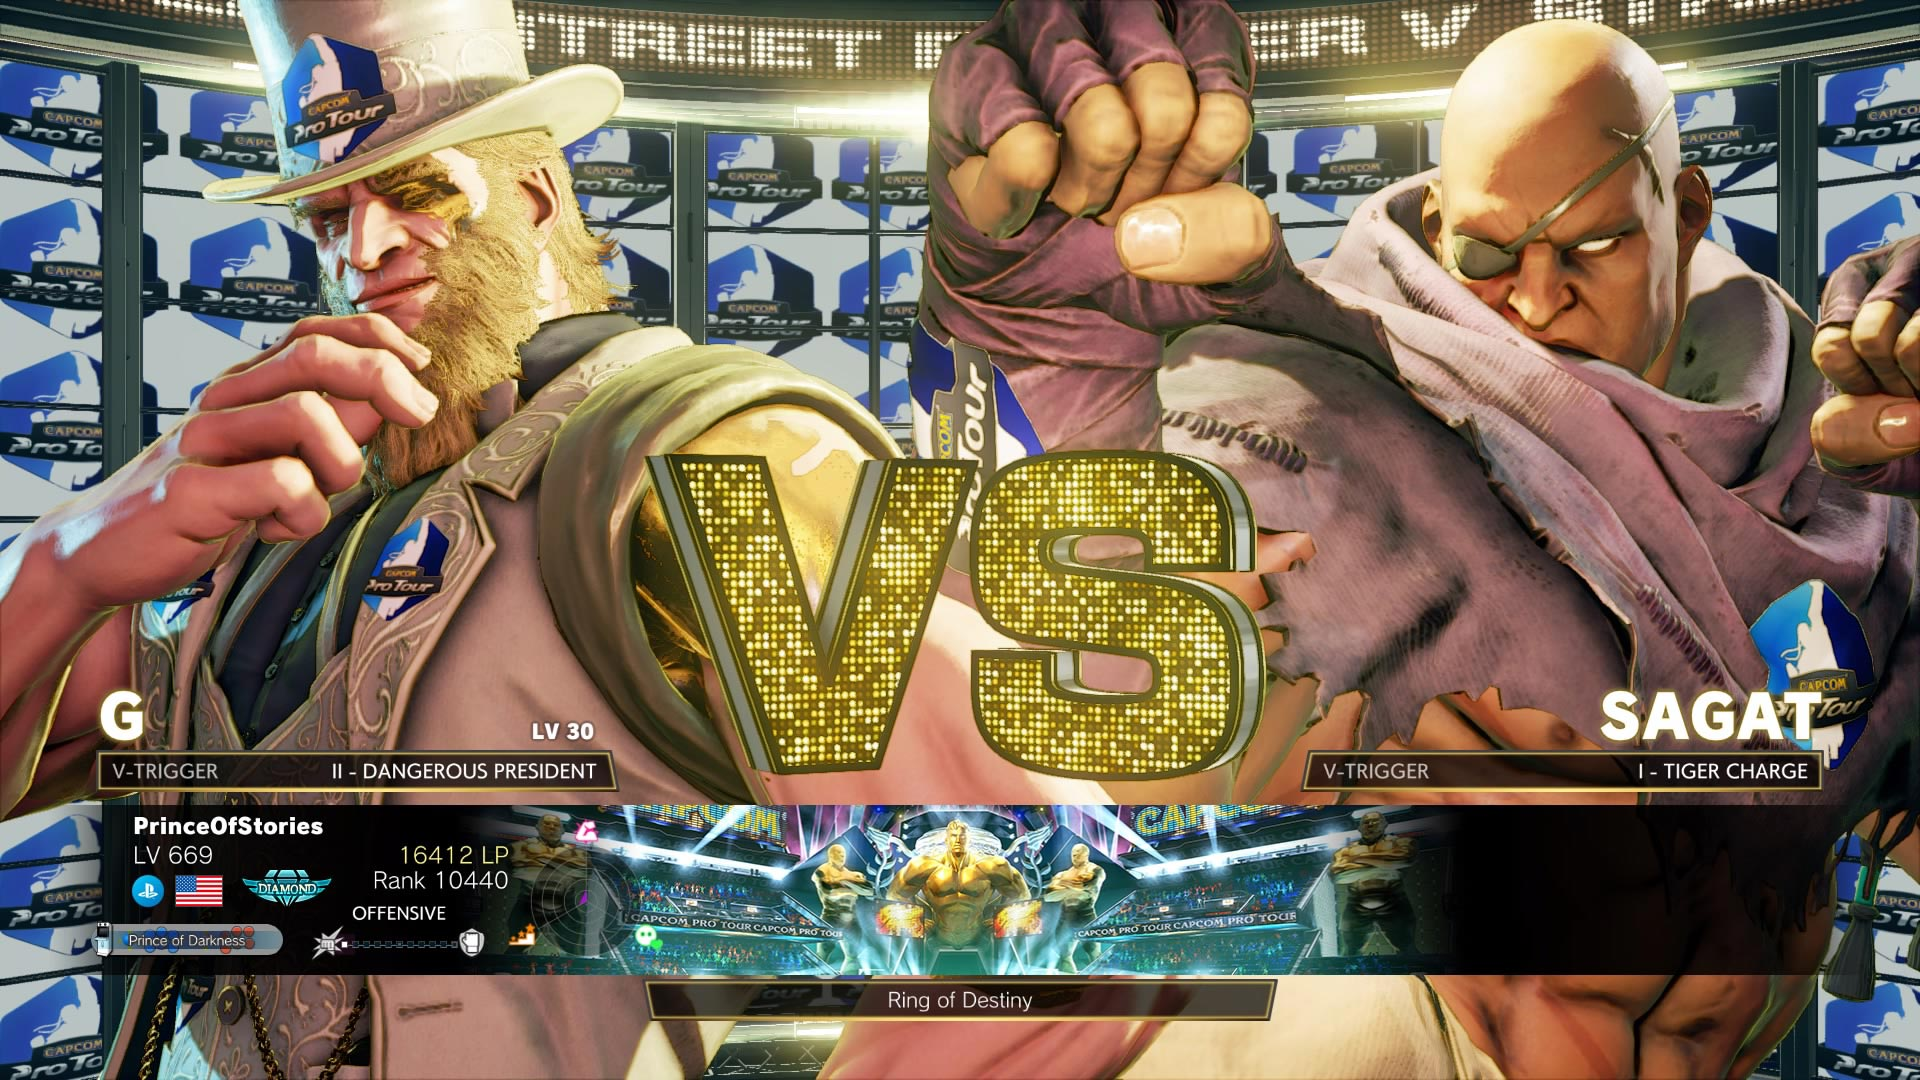 Street Fighter 5: Arcade Edition's sponsored content screenshots 2 out of 6 image gallery